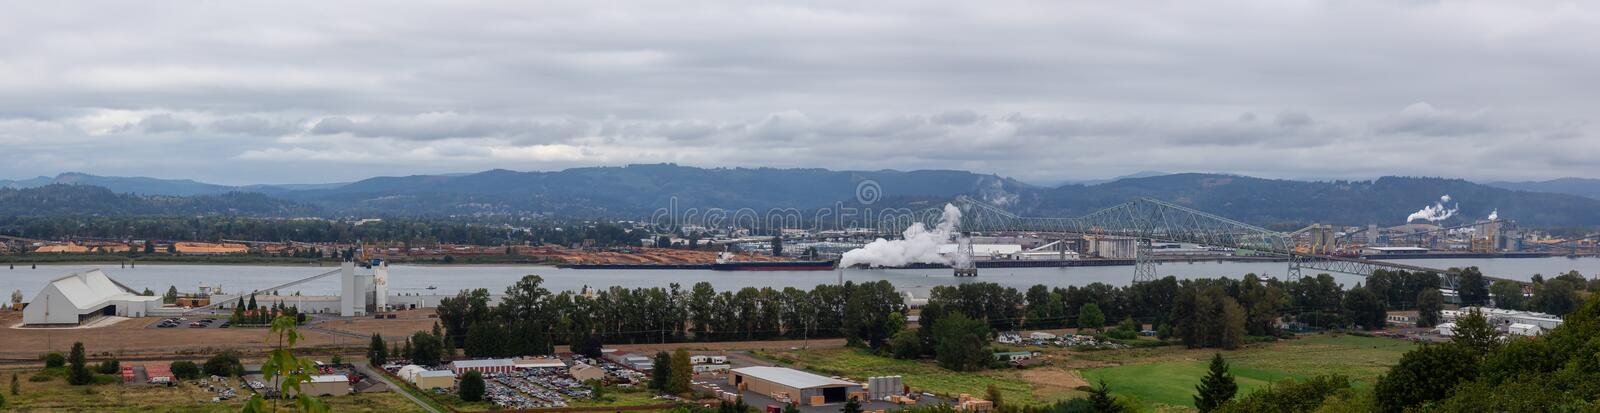 Longview, Washington, Verenigde Staten van Amerika stock foto